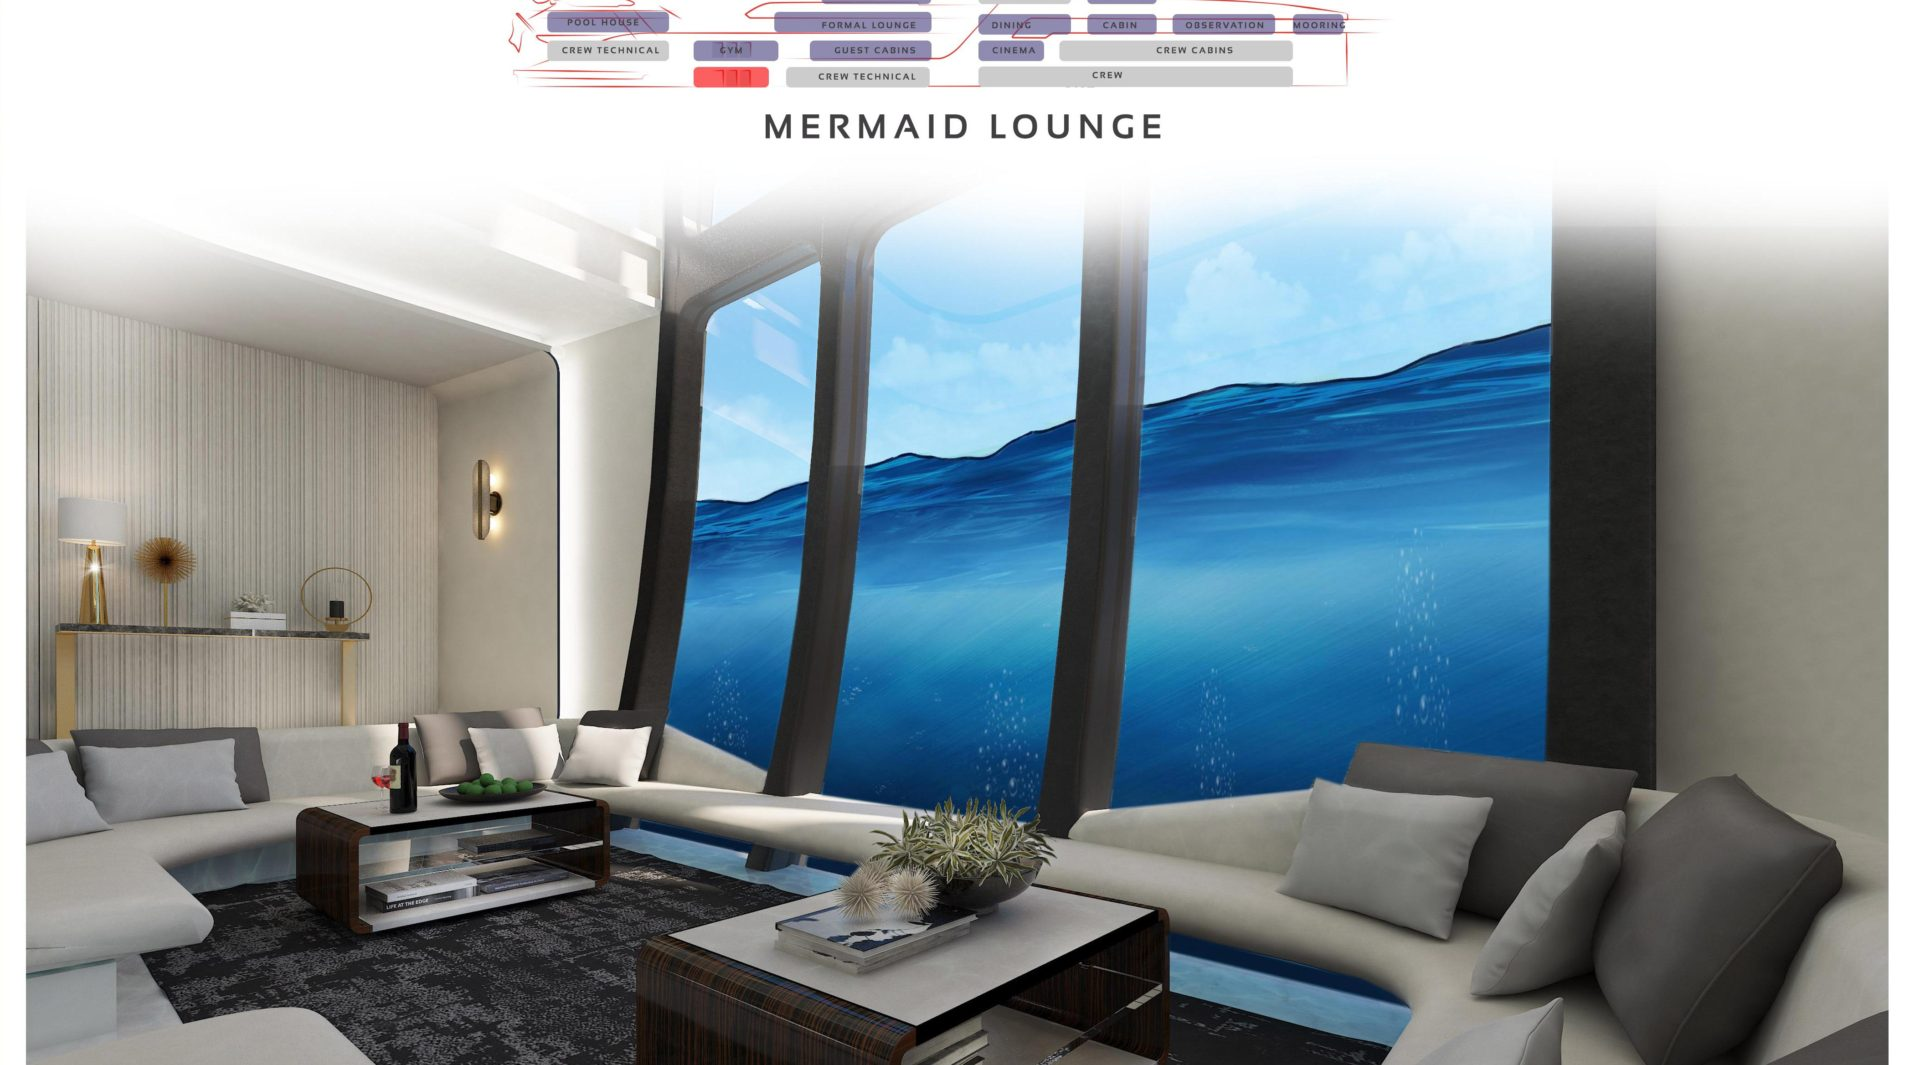 Preview of the Mermaid Lounge